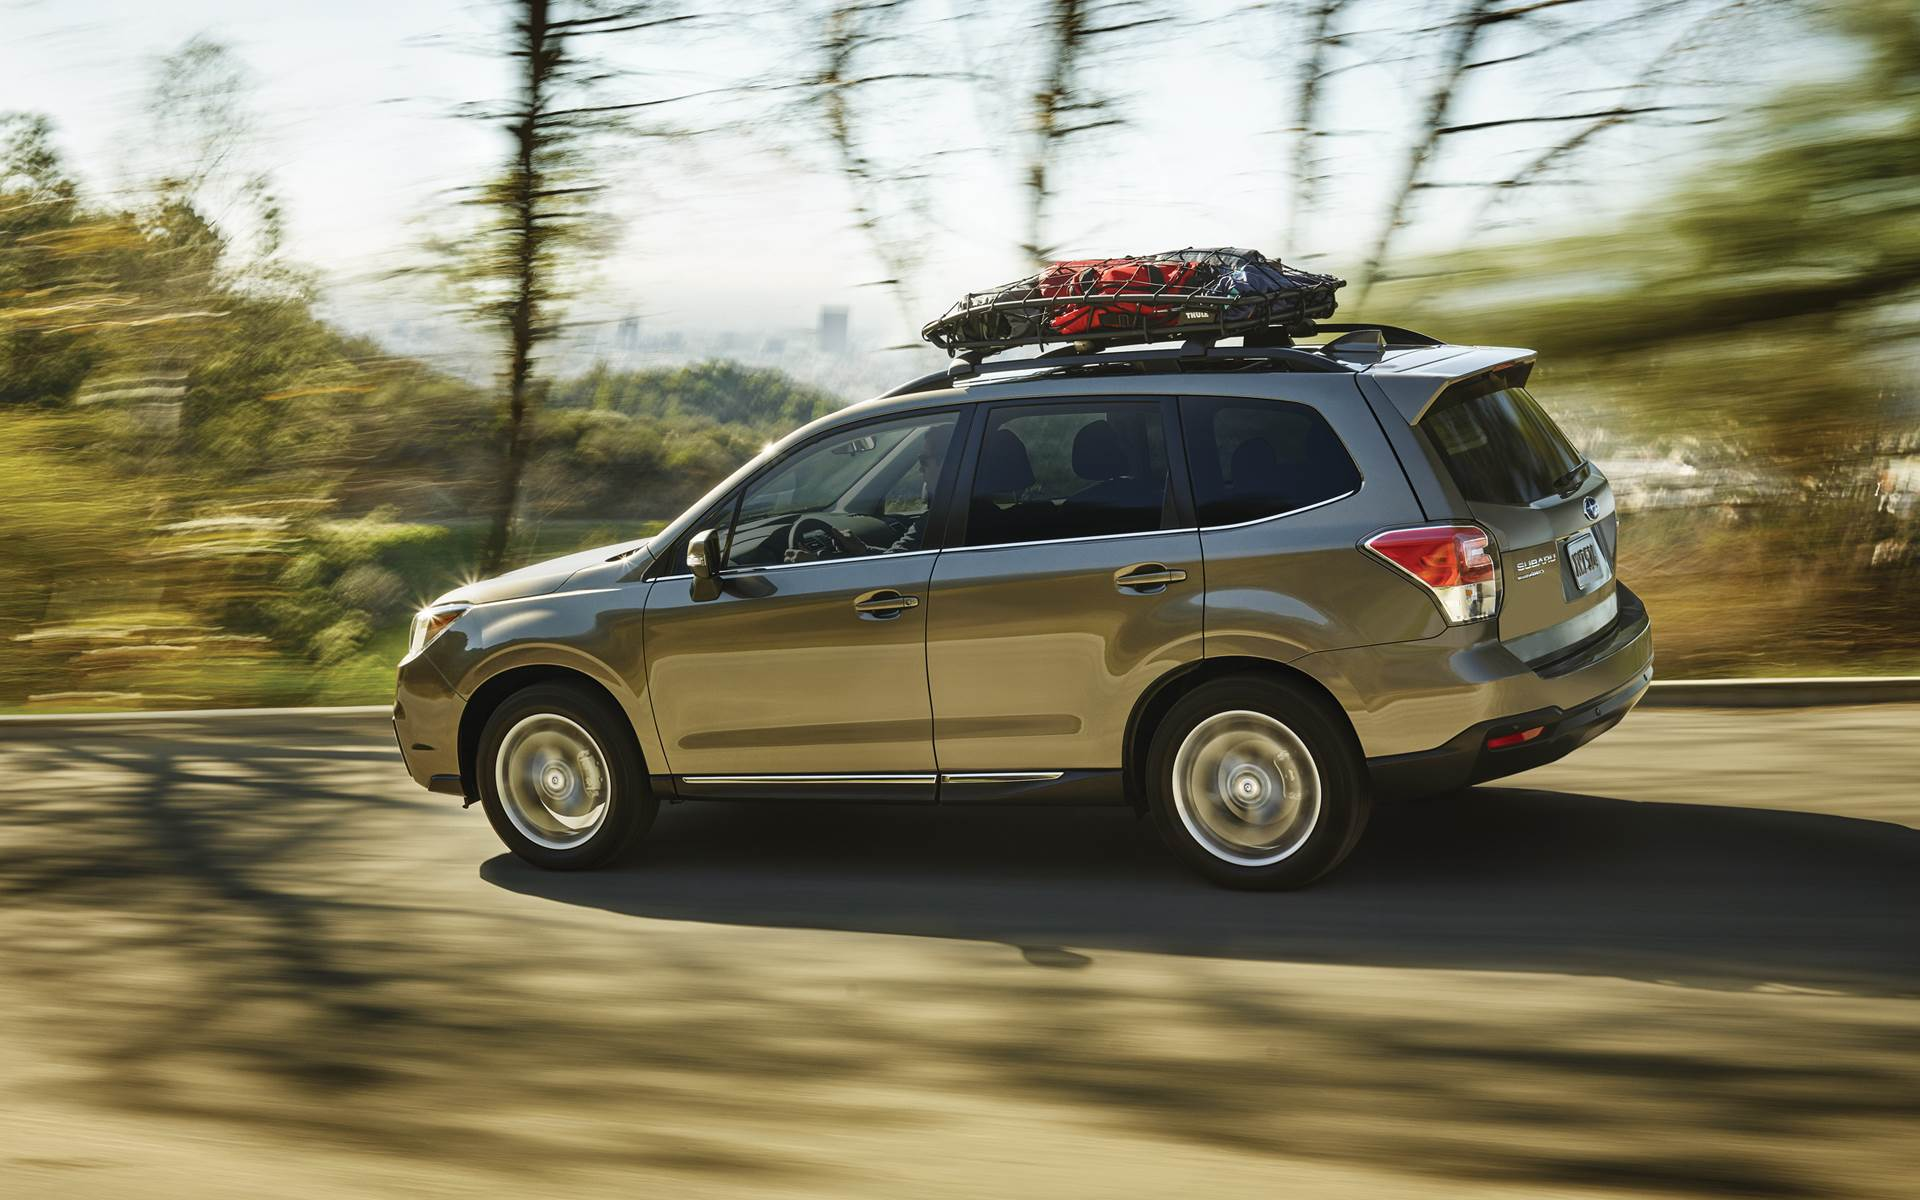 2018 Subaru Forester vs 2018 Ford Escape parison review by